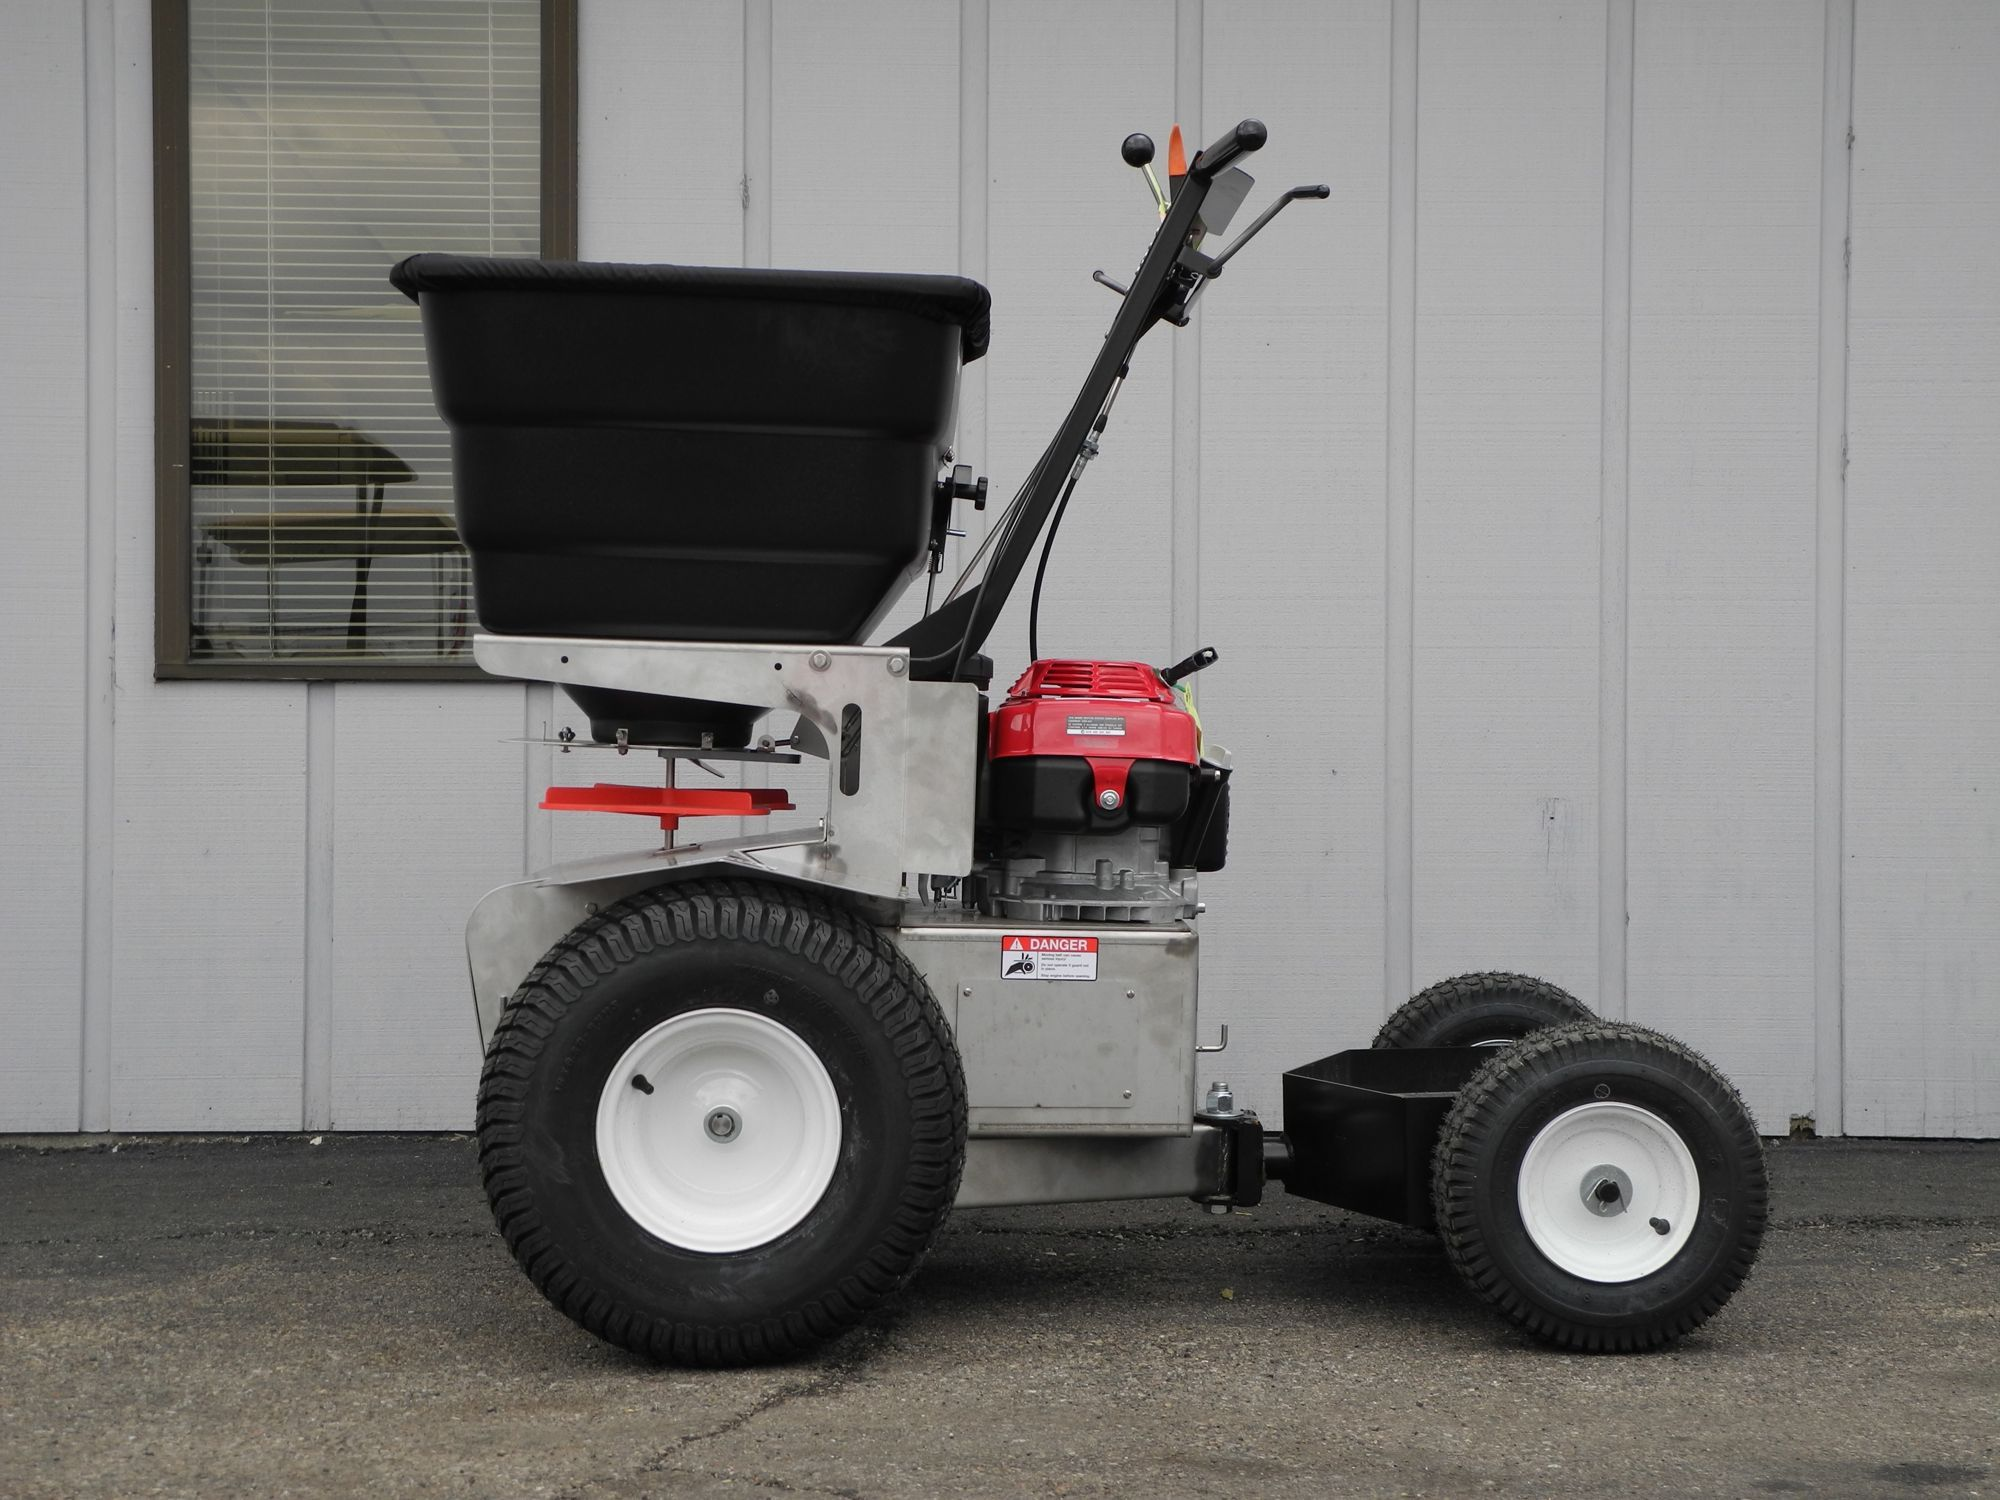 The Prizelawn PS 200 self-propelled ride-on spreader is a